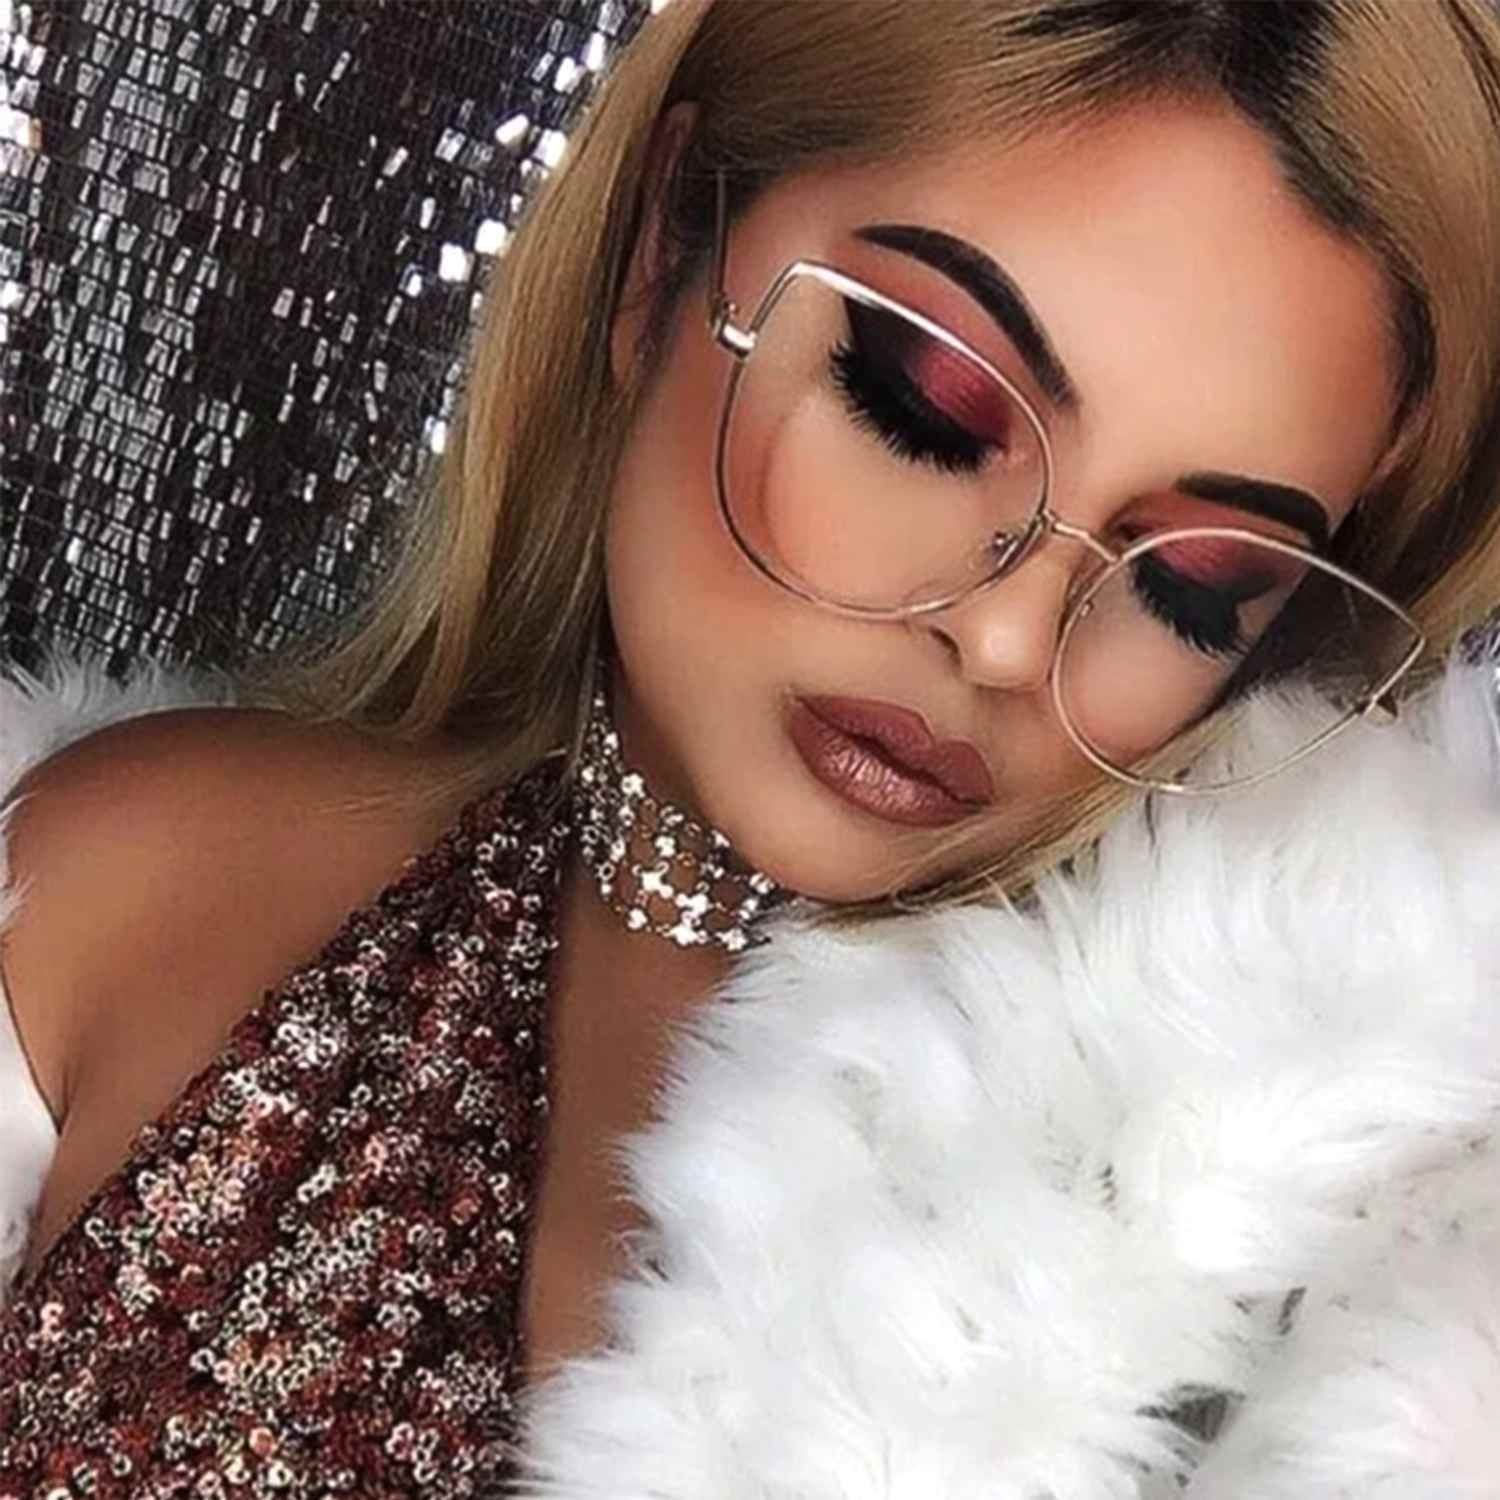 34bb4b6cacbe Designer Inspired Clear Lens Cat Eye Eyeglasses Large Metal Frame Women  Fashion in Clothing, Shoes & Accessories, Women's Accessories, Sunglasses &  Fashion ...